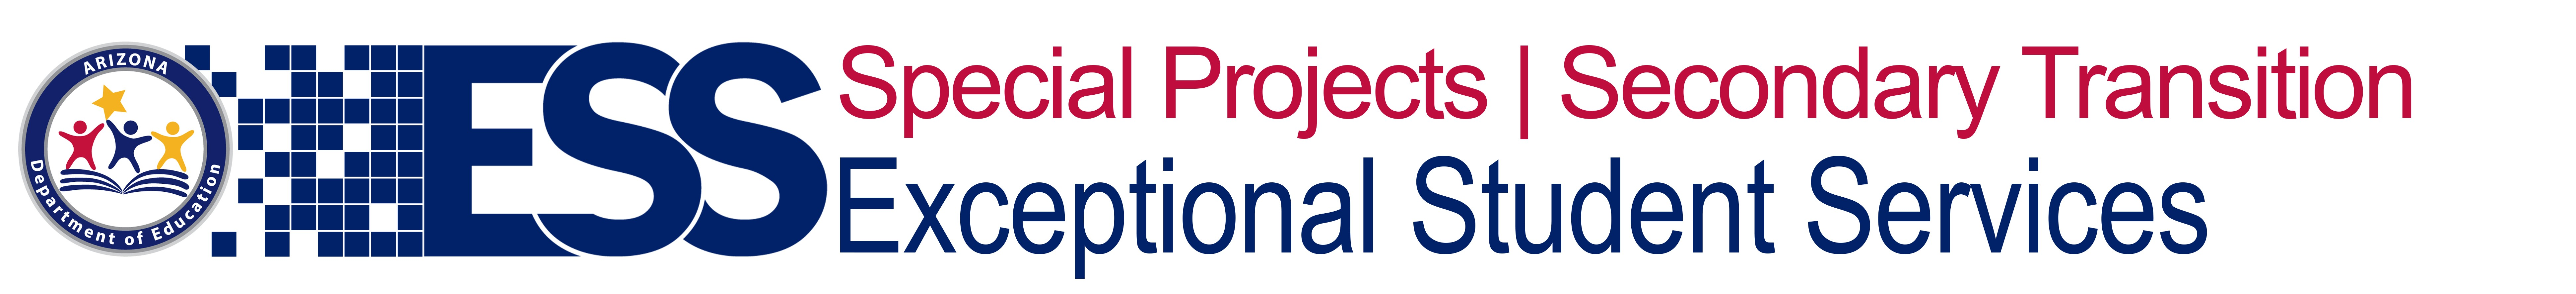 Arizona Department of Education, Exceptional Student Services. Special Projects, Secondary Transition Logo